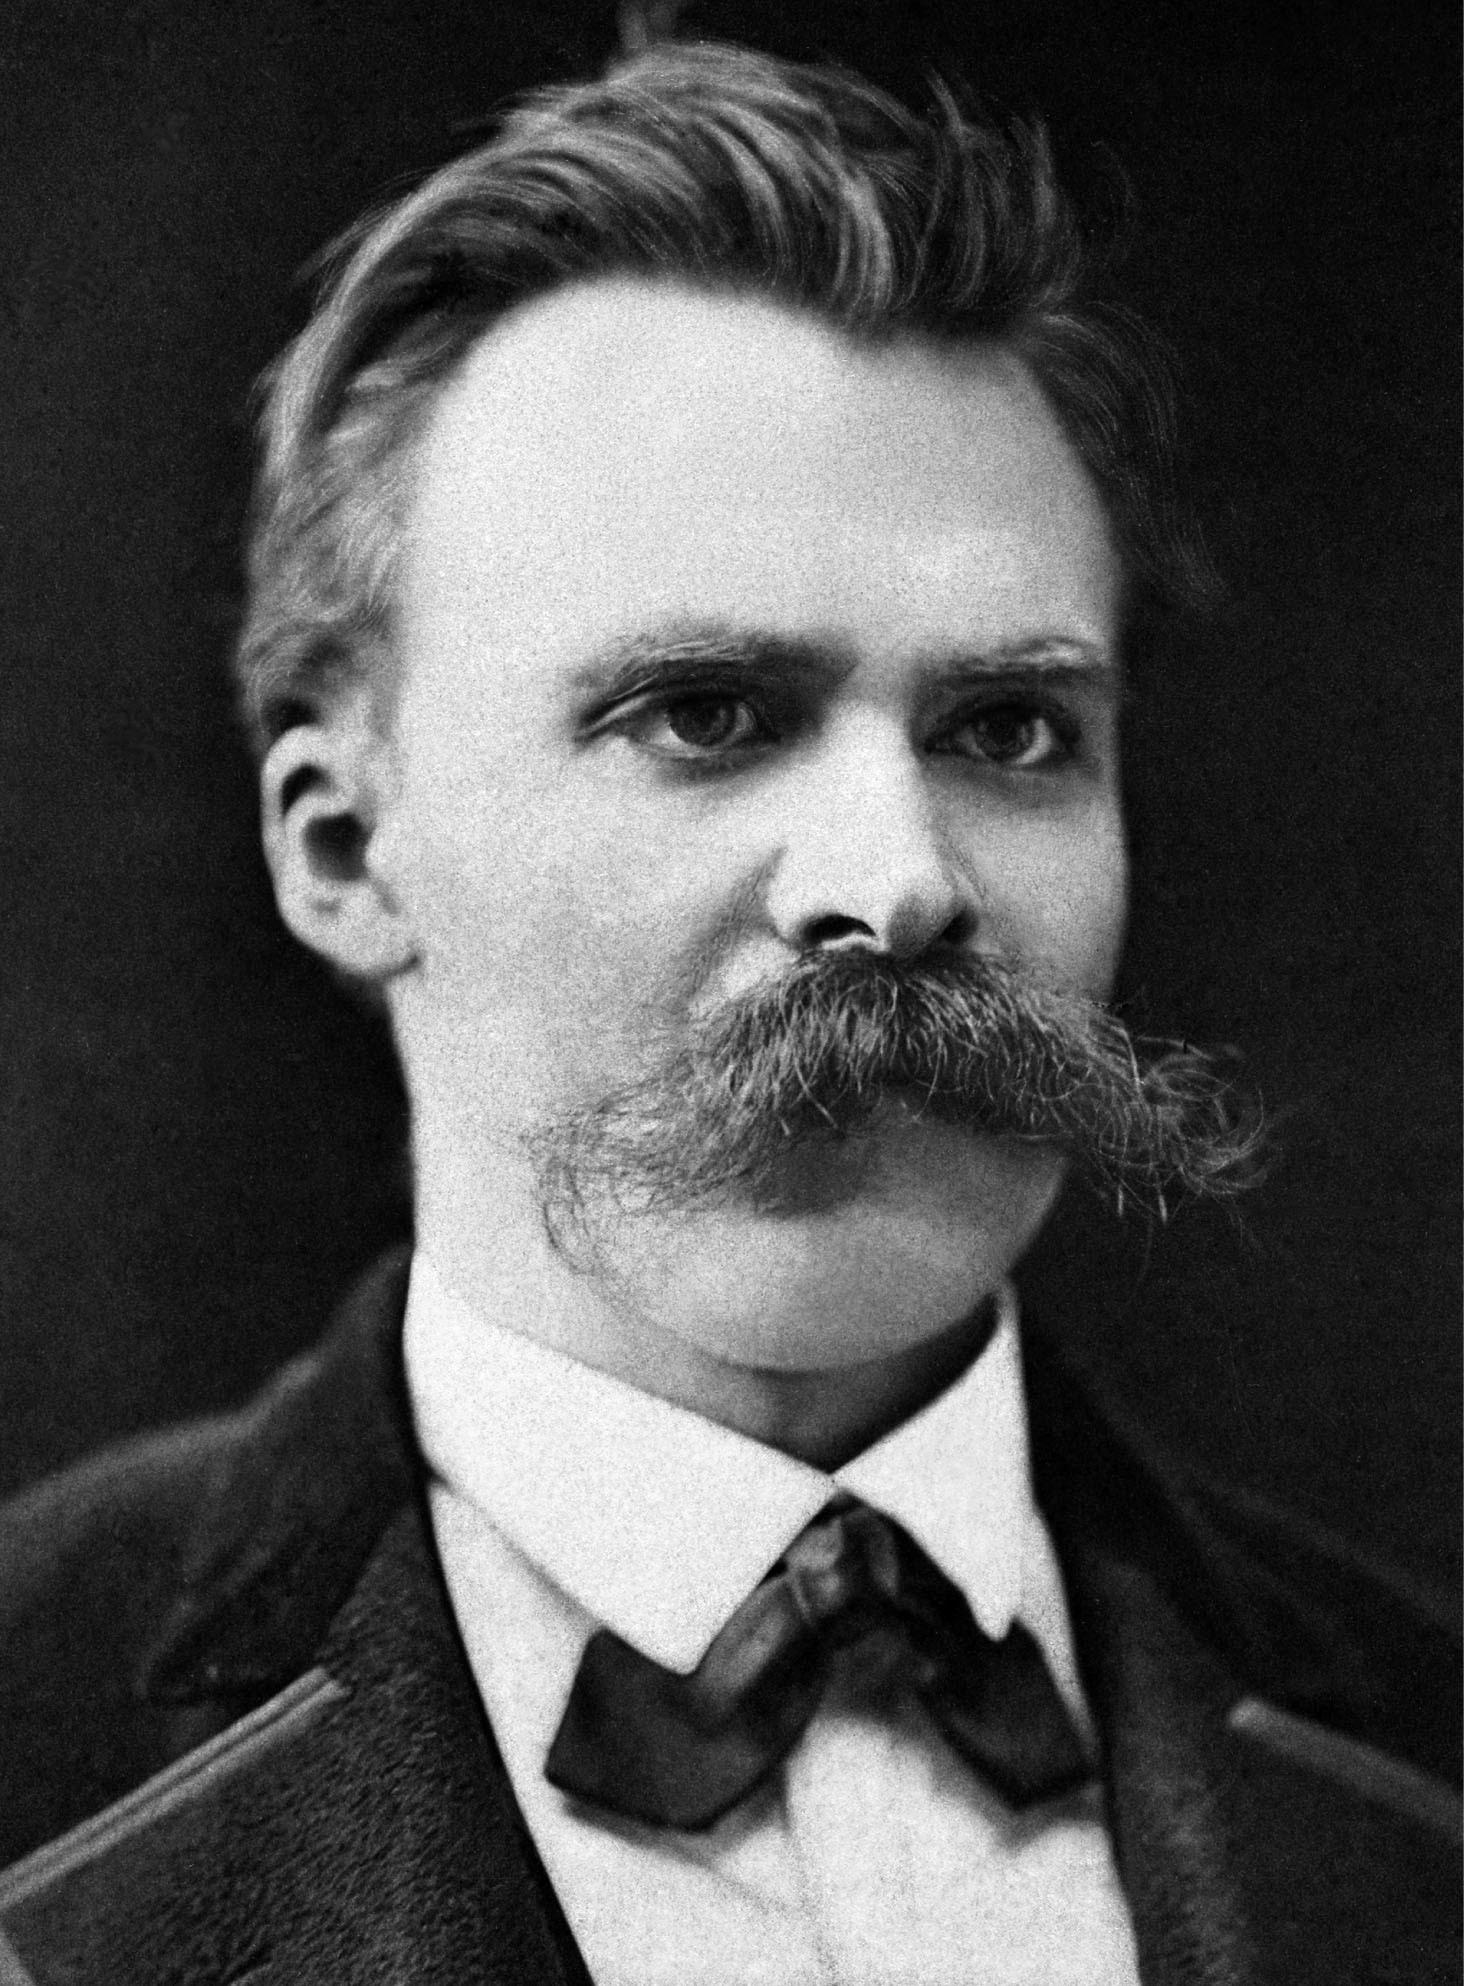 https://i2.wp.com/upload.wikimedia.org/wikipedia/commons/1/1b/Nietzsche187a.jpg